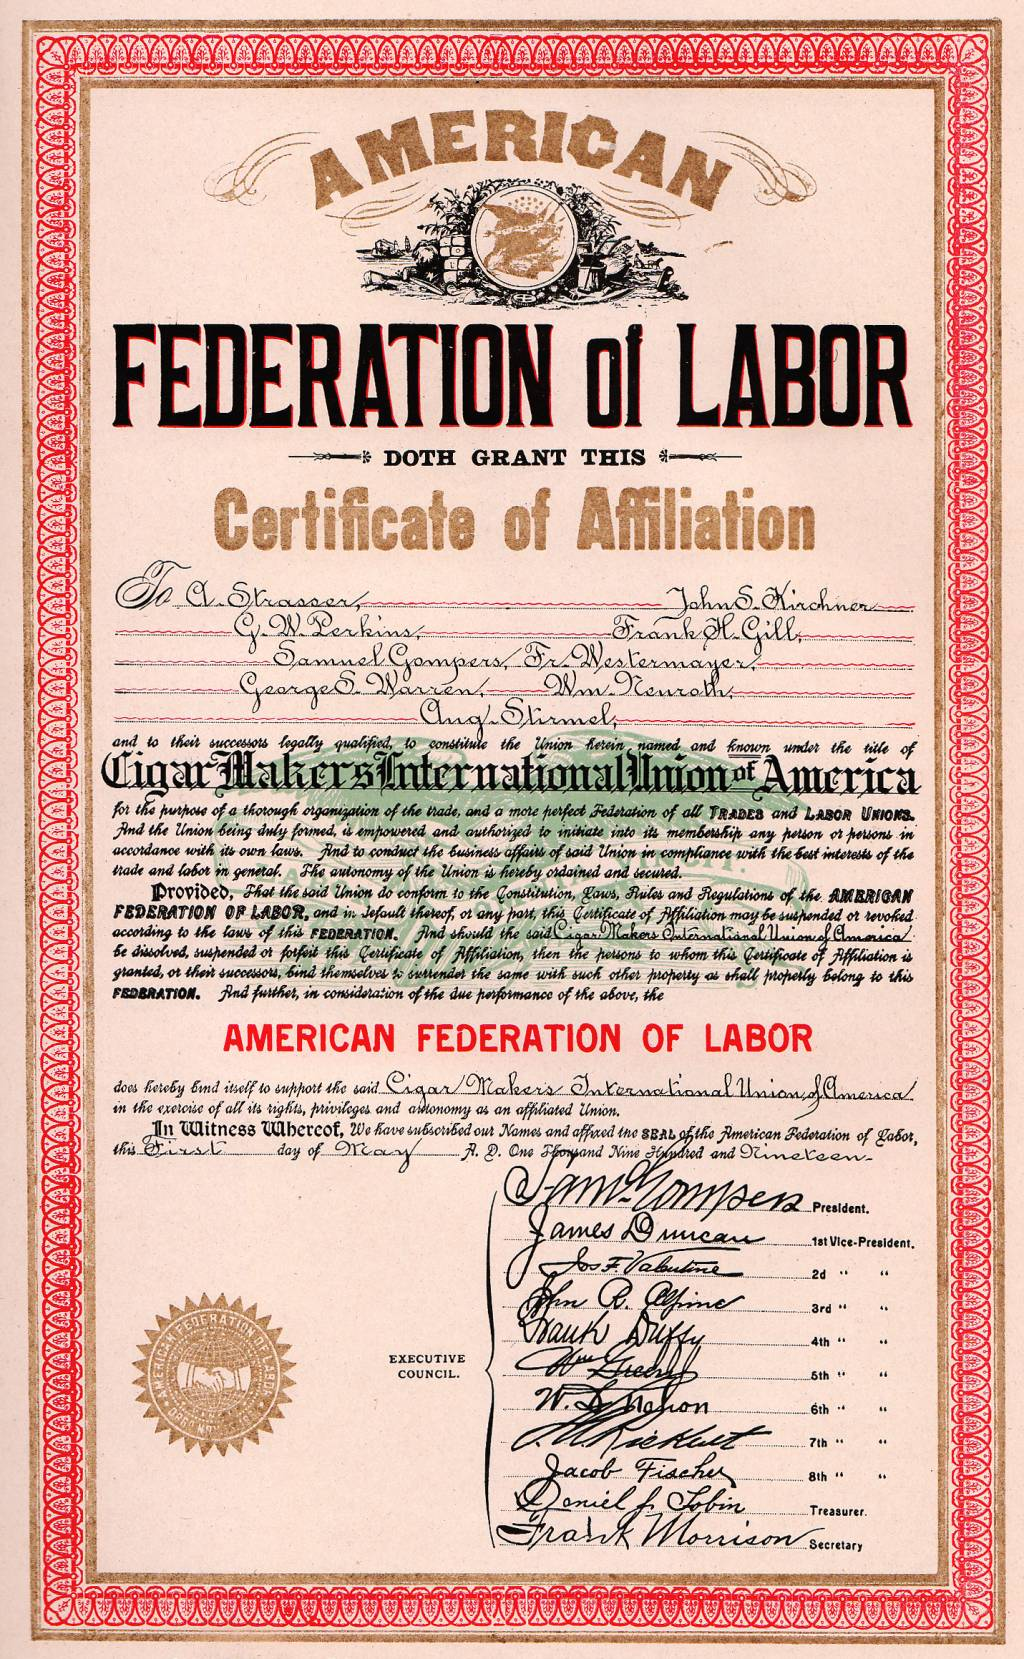 how successful was organized labor in improving the position of english american federation of labor charter for the cigar makers international union of america